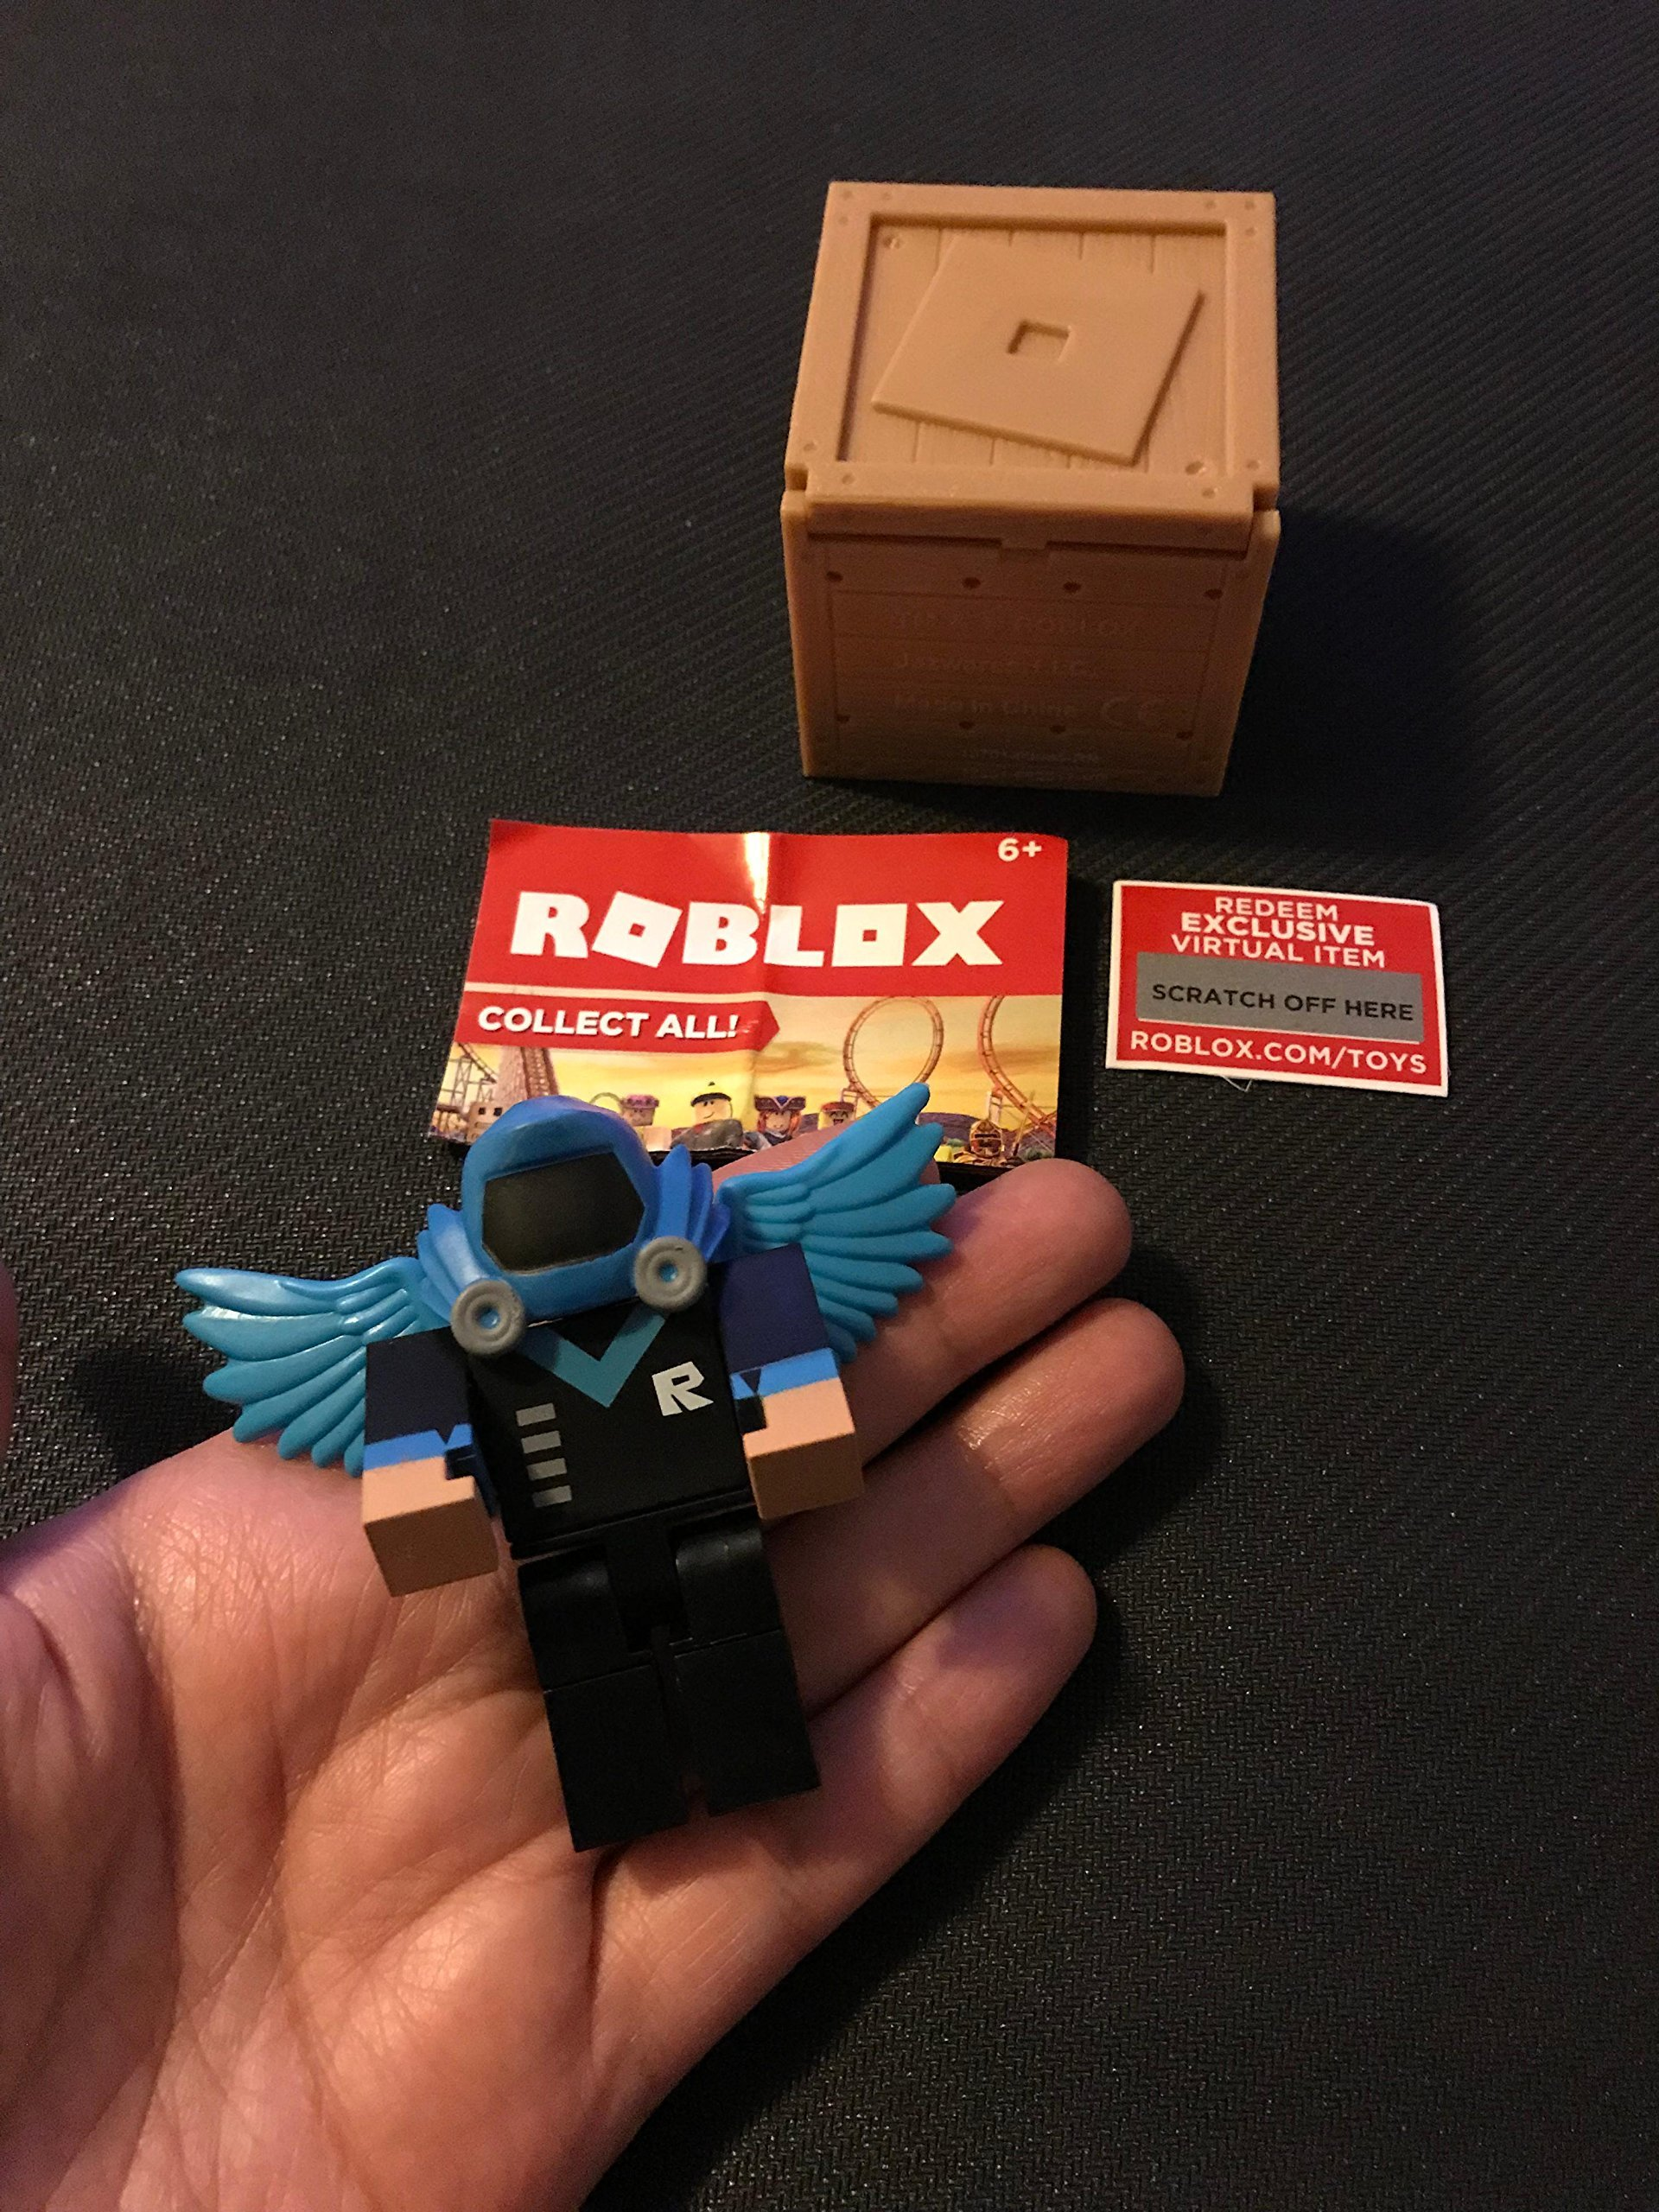 Roblox Series 2 Vurse Action Figure Mystery Box Virtual Item Code 25 Roblox Series 2 Vurse Action Figure Mystery Box Virtual Item Code 2 5 Amazon Sg Toys Games